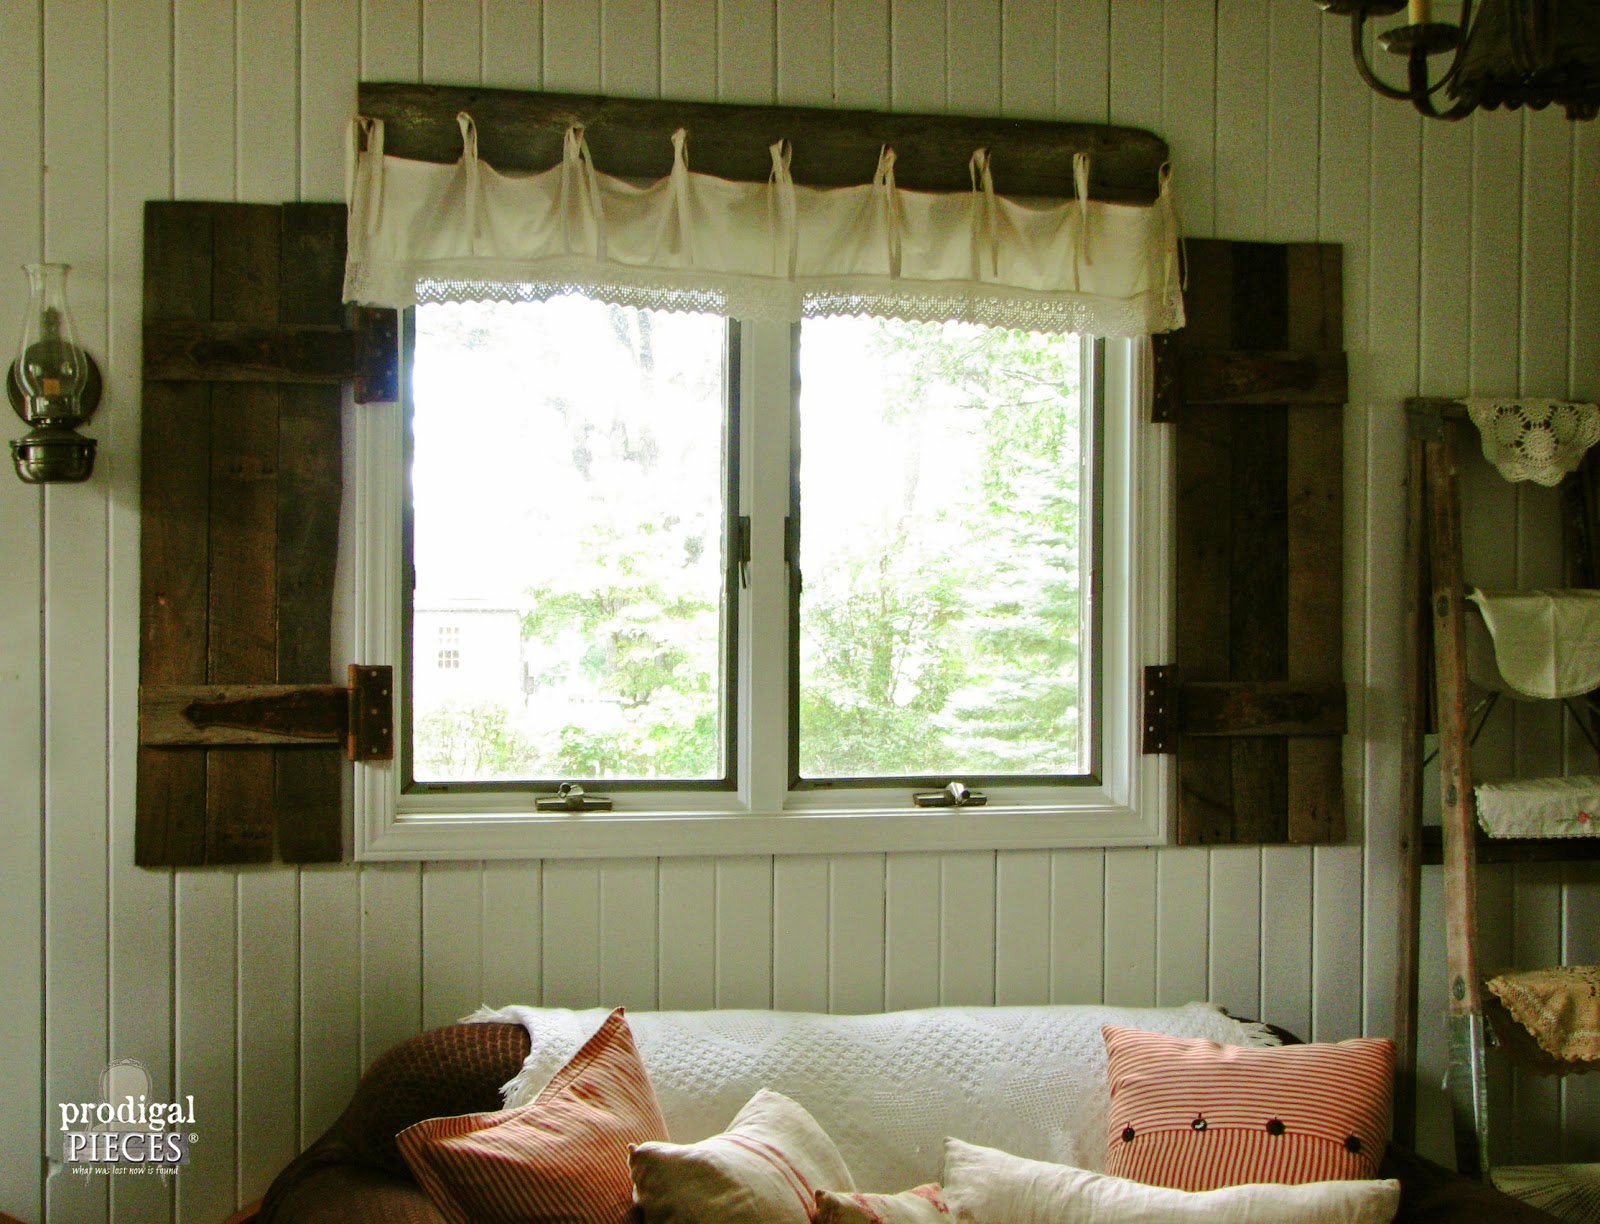 DIY: Barn Wood Shutters from Pallets - Prodigal Pieces